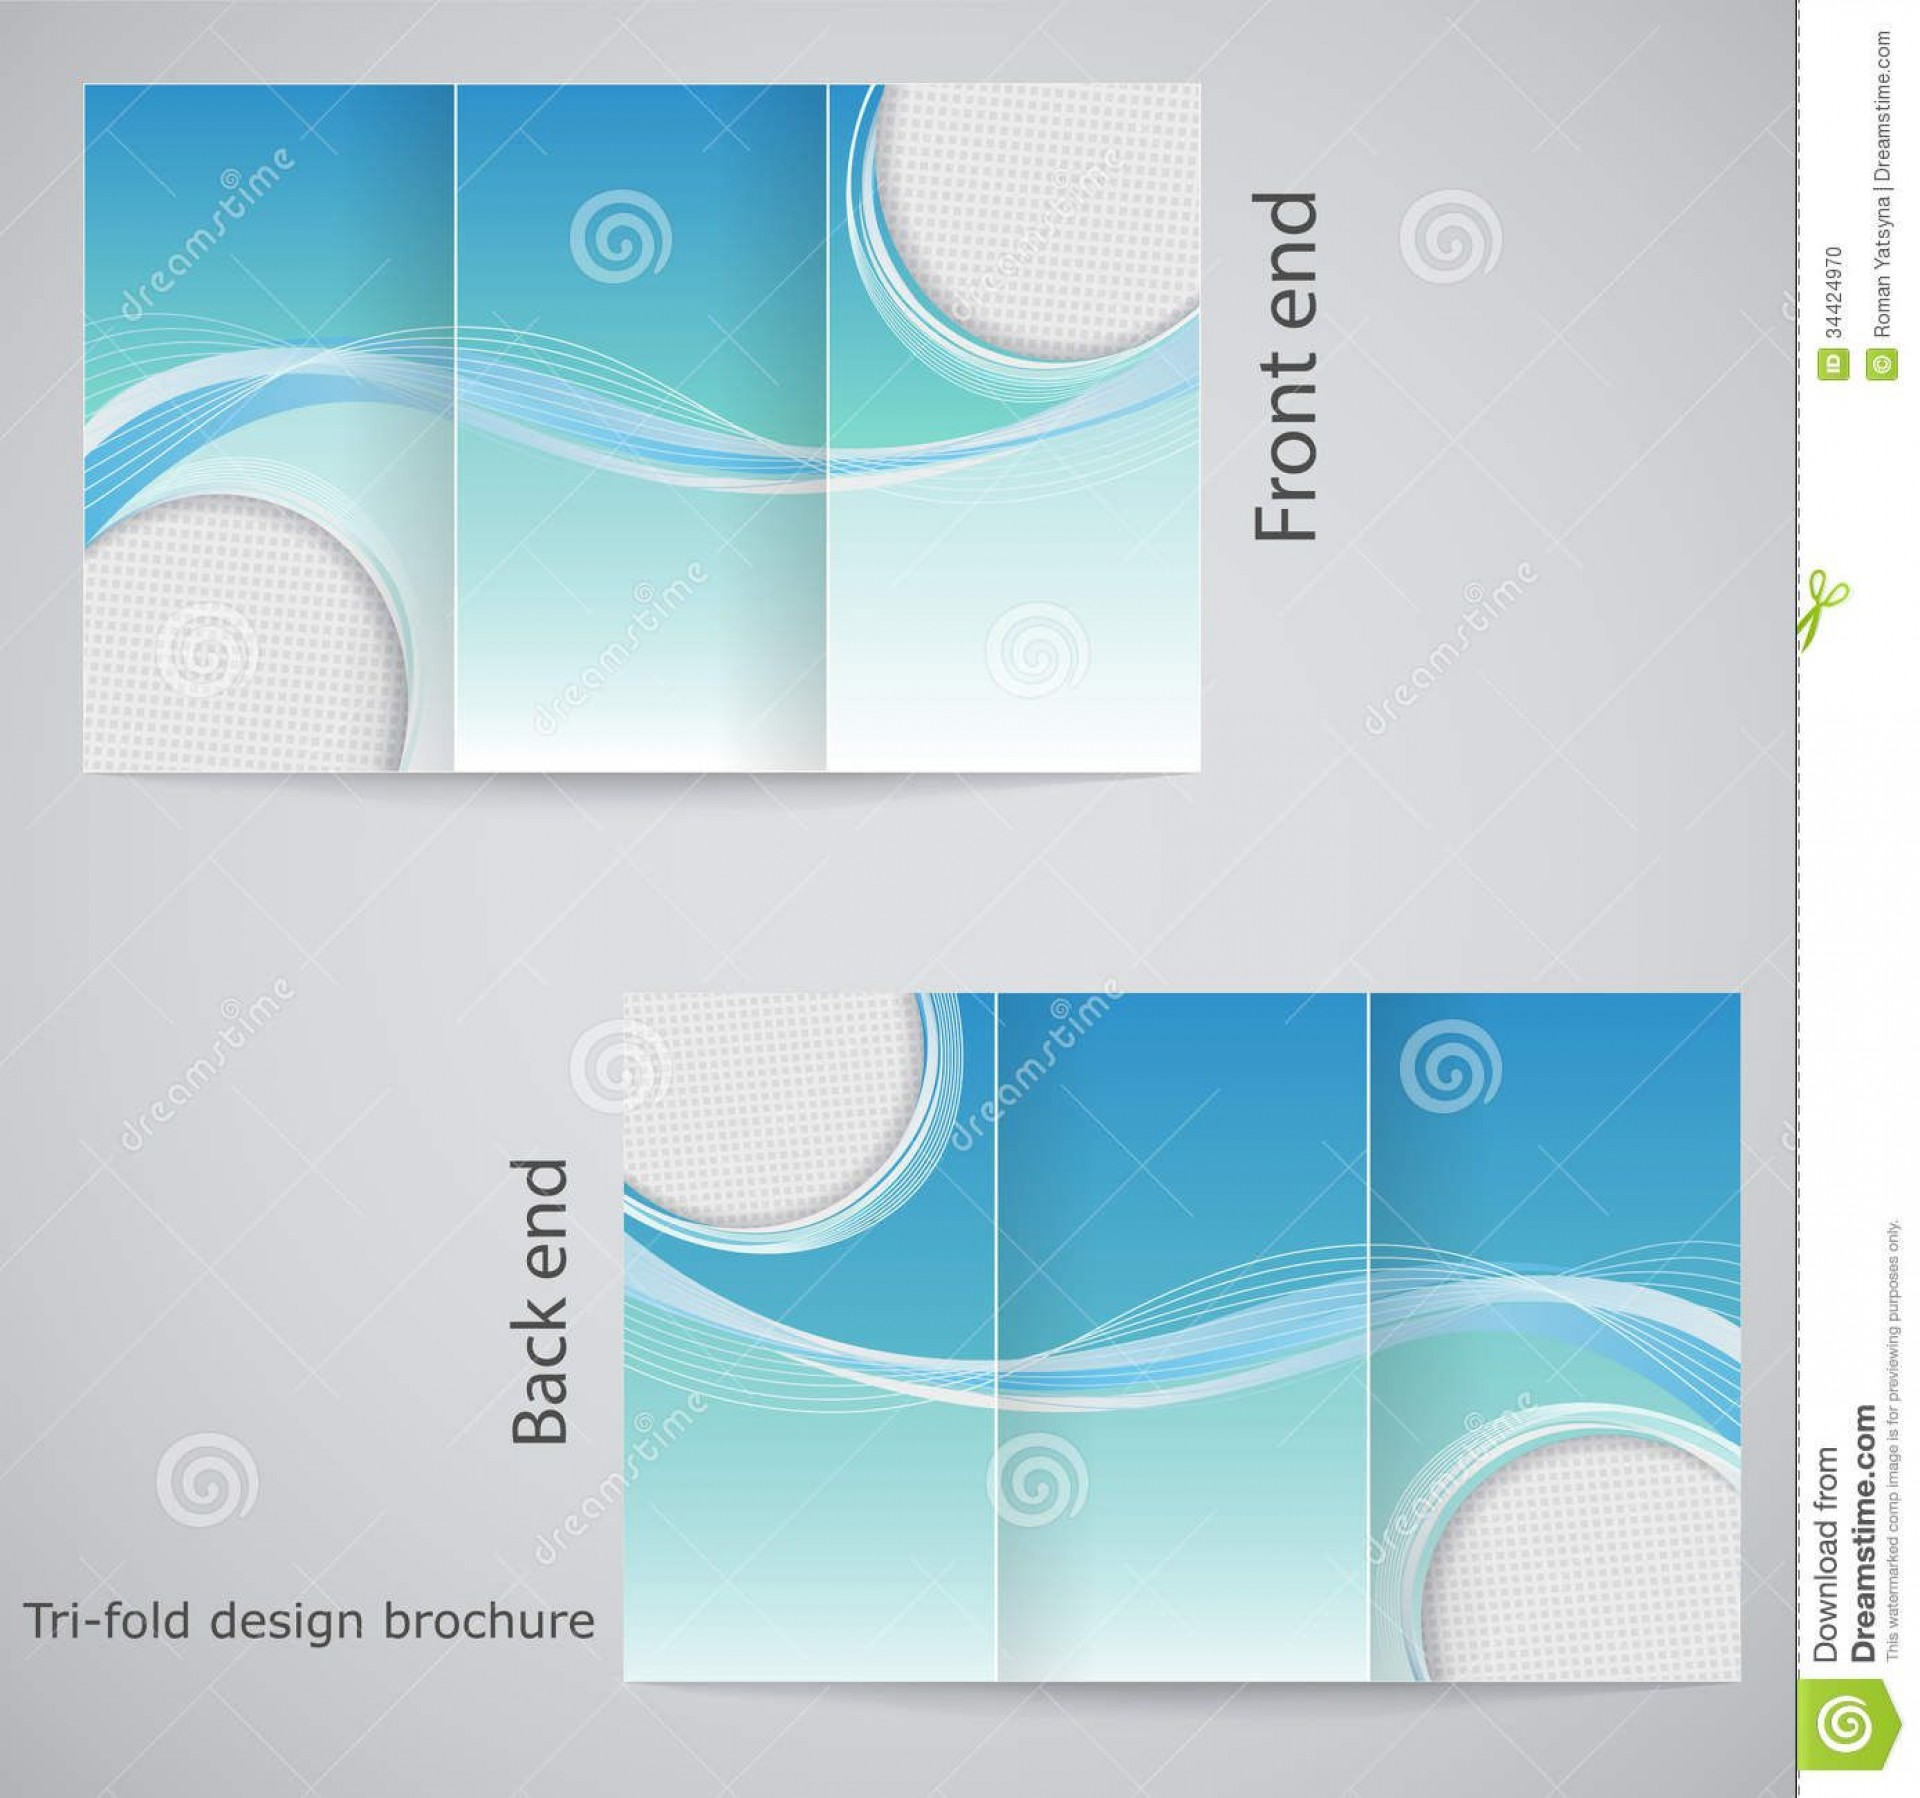 008 Dreaded Three Fold Brochure Template Word Free Highest Clarity  3 Download1920